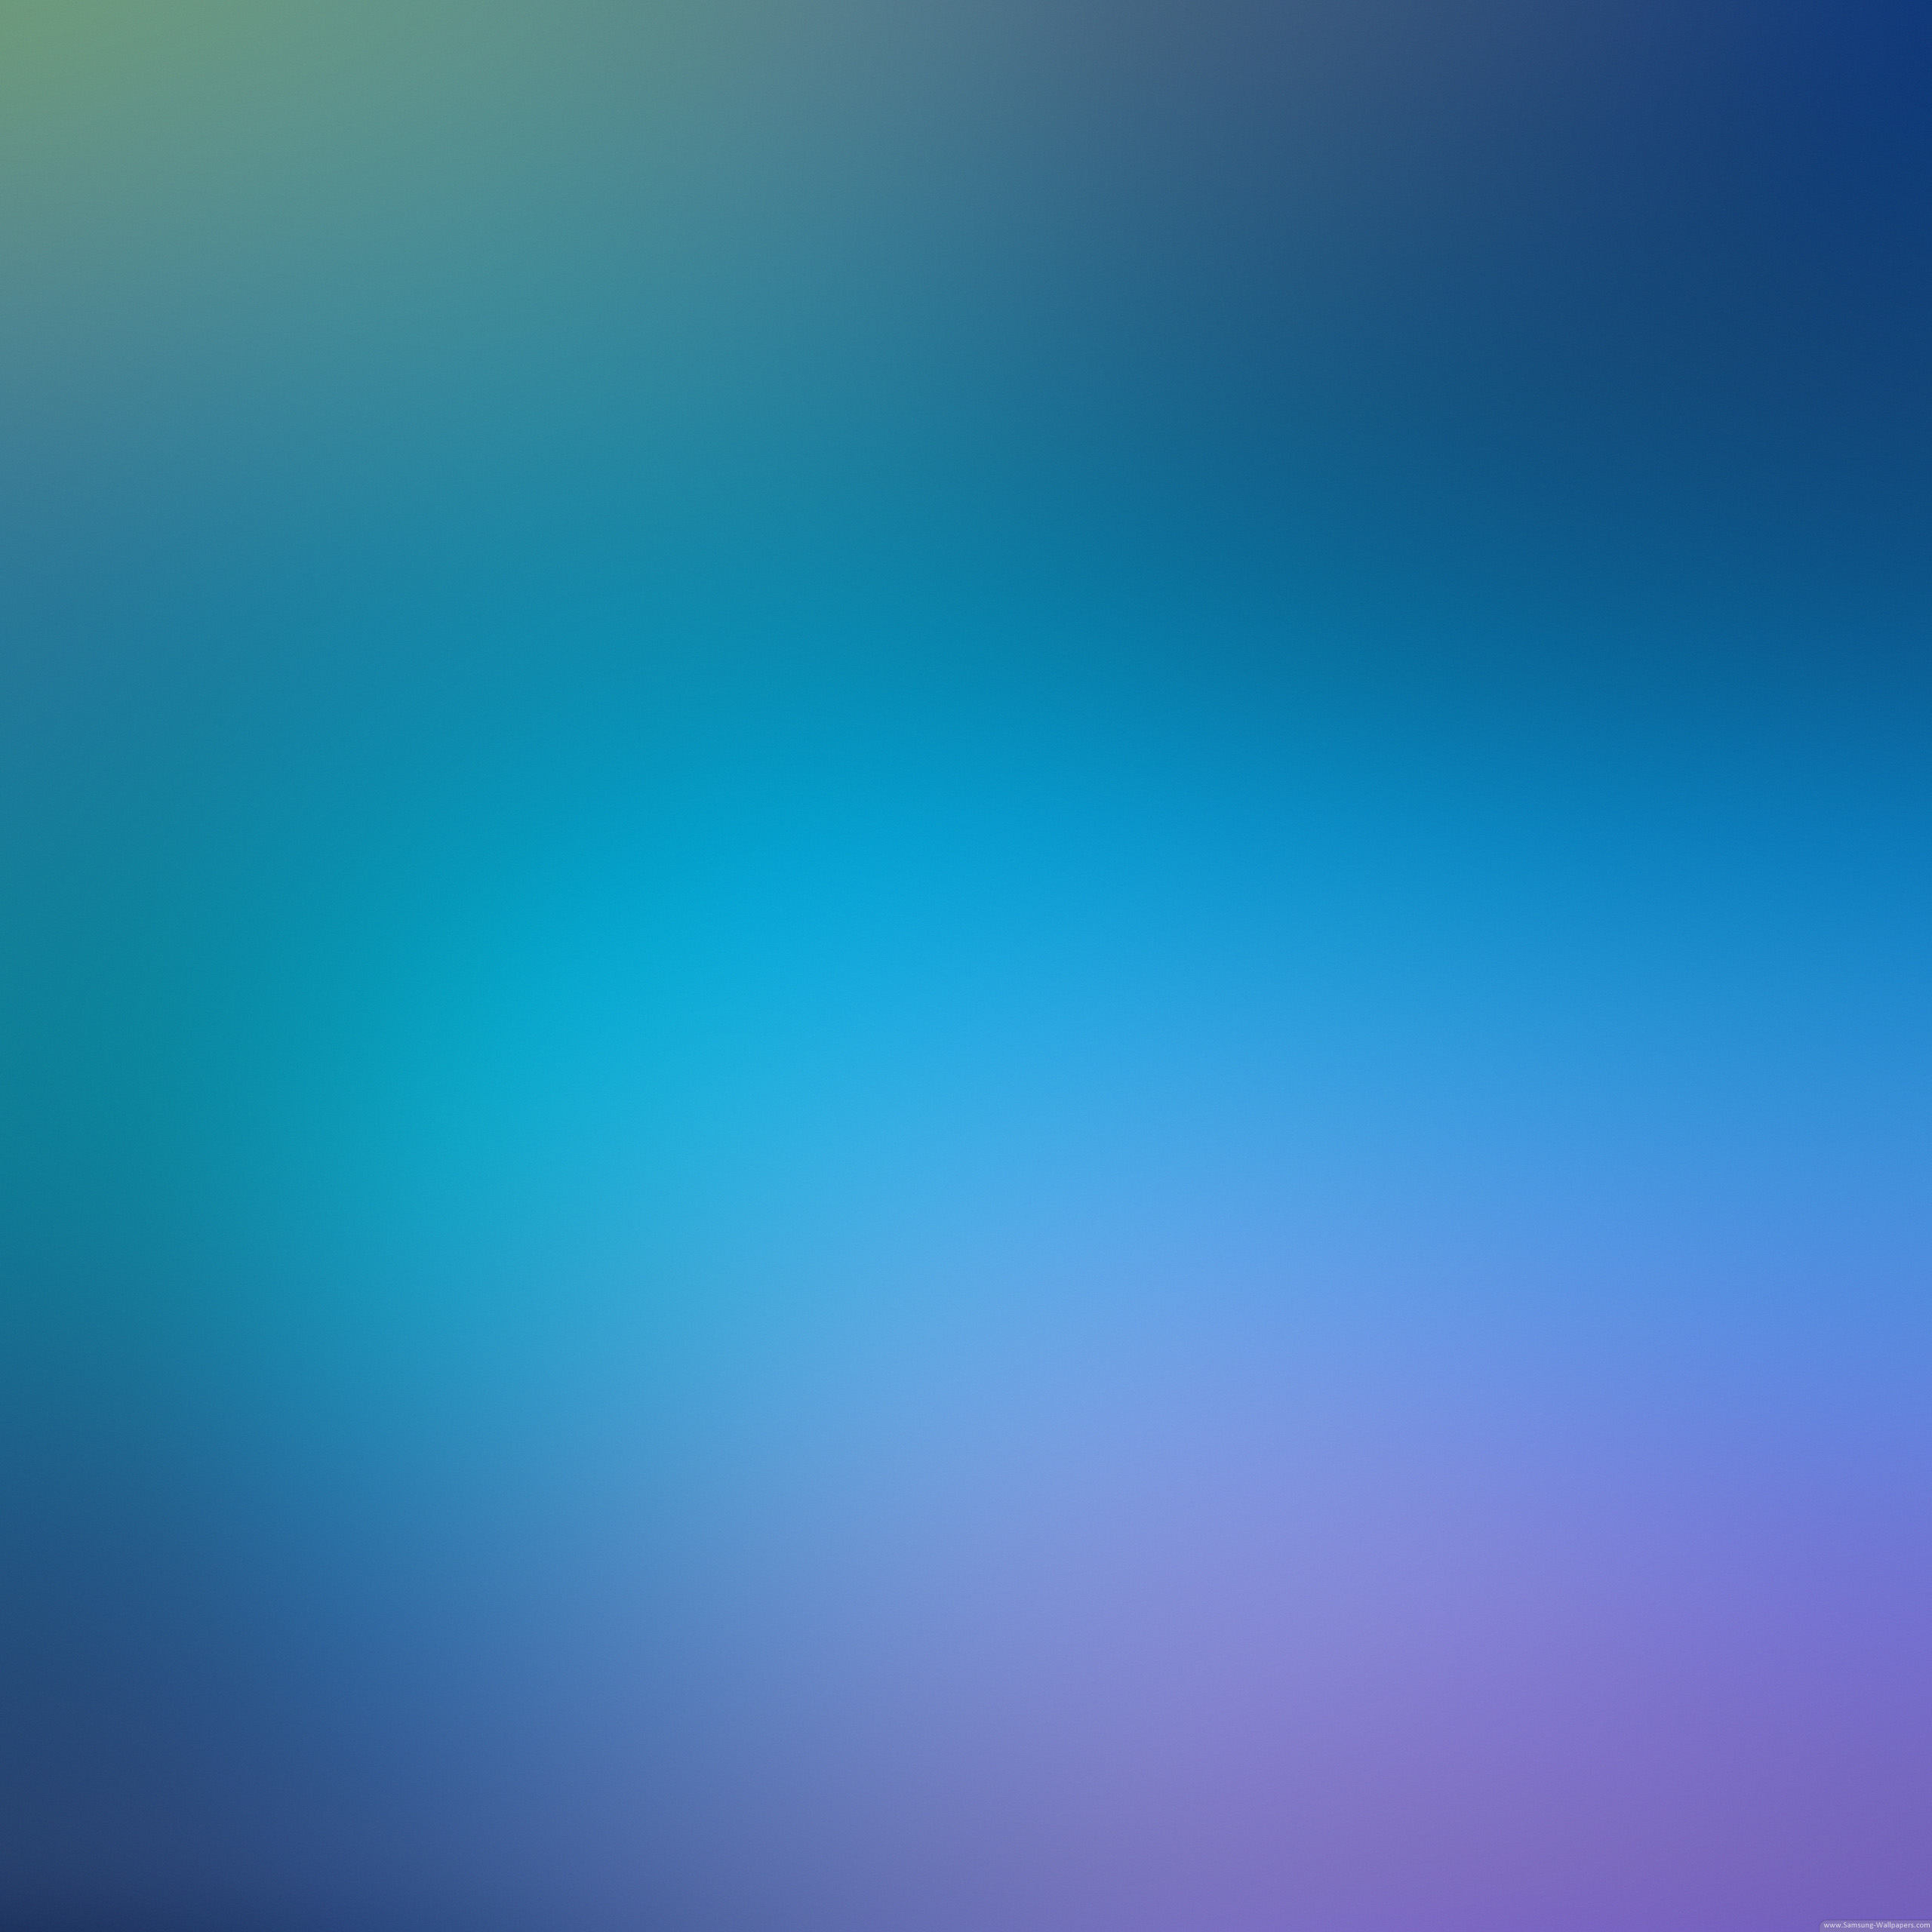 3d Wallpaper Galaxy S8 Simple Design Background For Windows Mac Android And